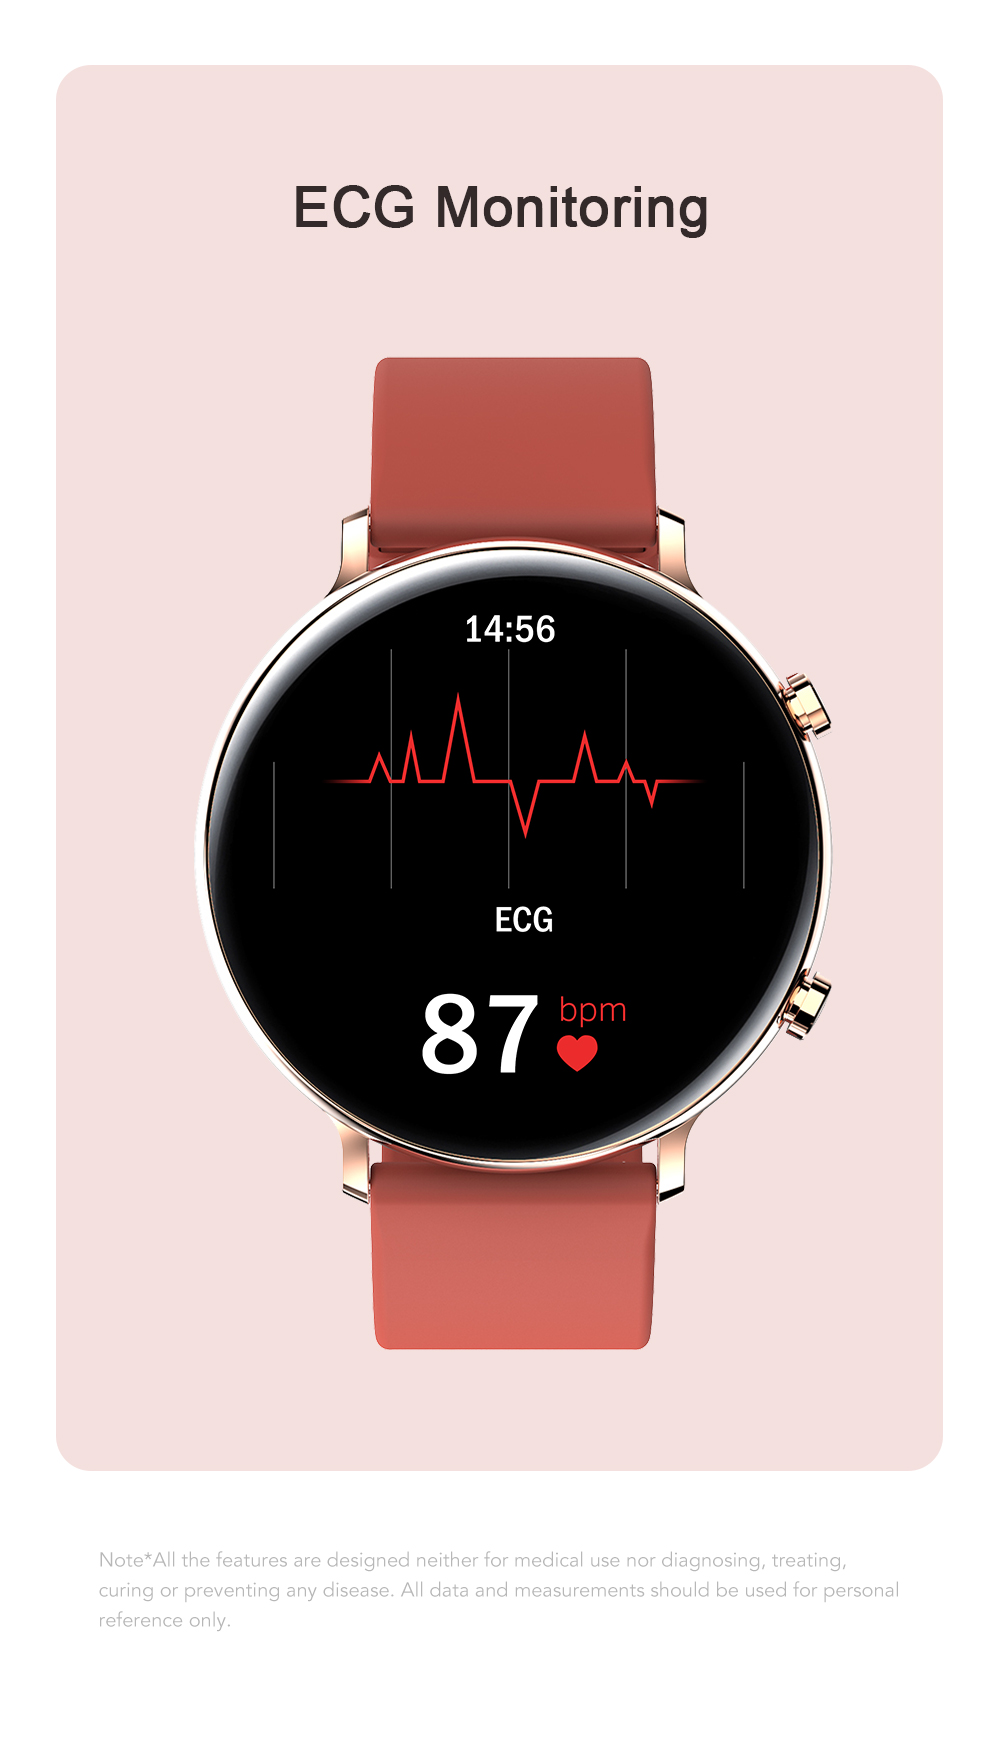 He580d1c2a03c4a6aa8ca628cae99a462A SANLEPUS ECG PPG Smart Watch With Dial Calls 2021 New Men Women Smartwatch Blood Pressure Monitor For Android Samsung Apple